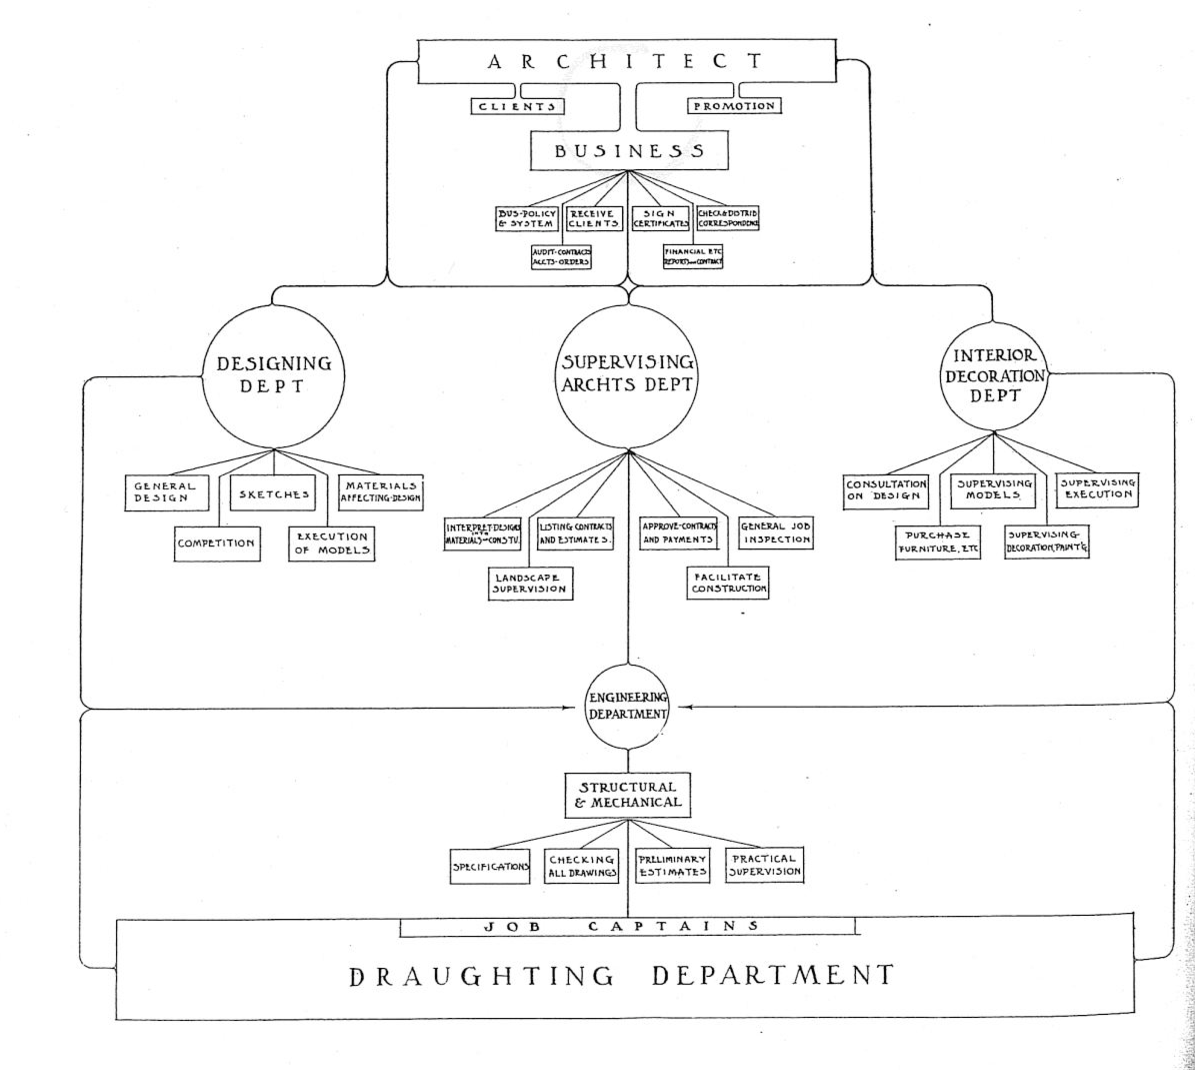 Pdf  The Development Of Architectural Office Specialization As Evidenced By Professional